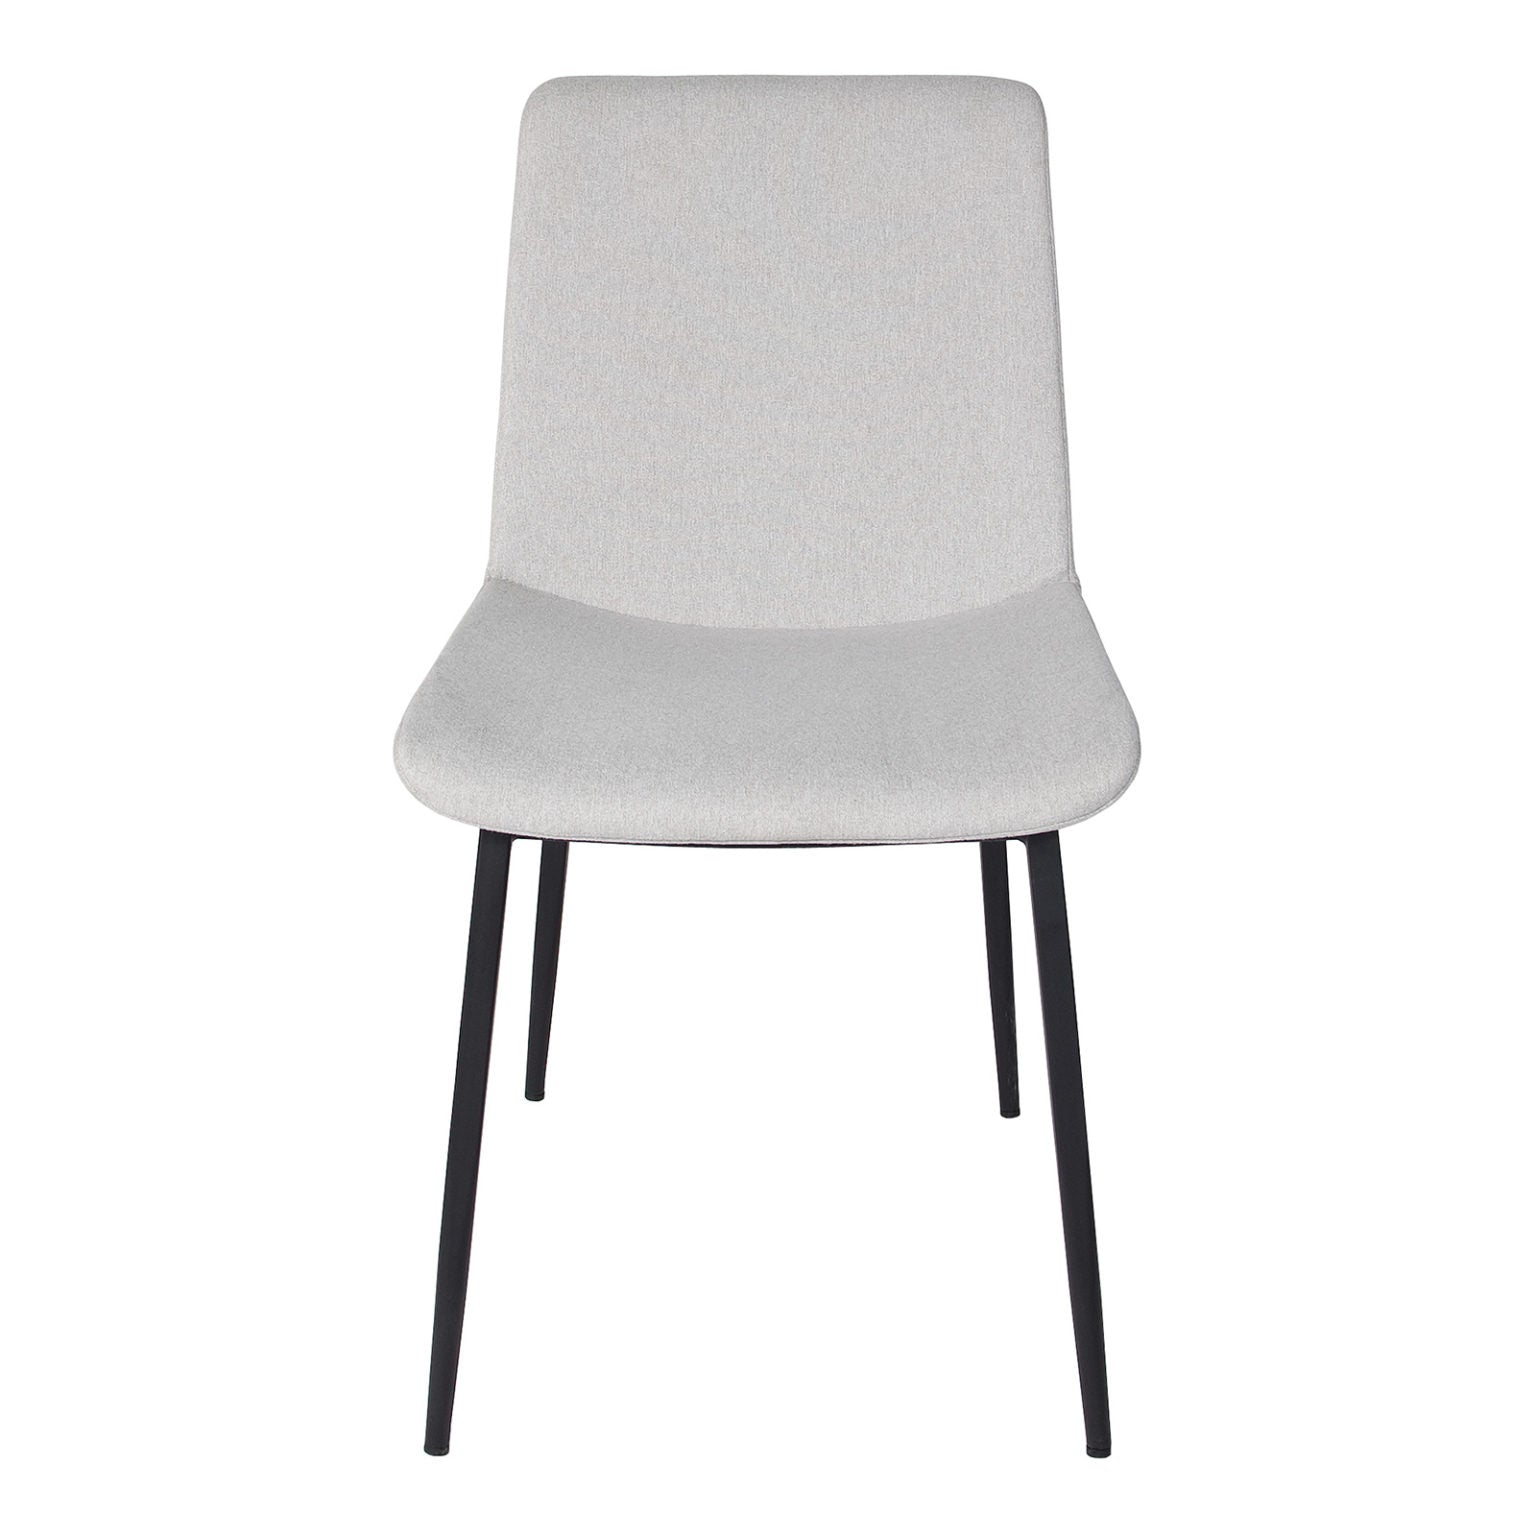 Thames Chair - Dove Grey/Matte Black